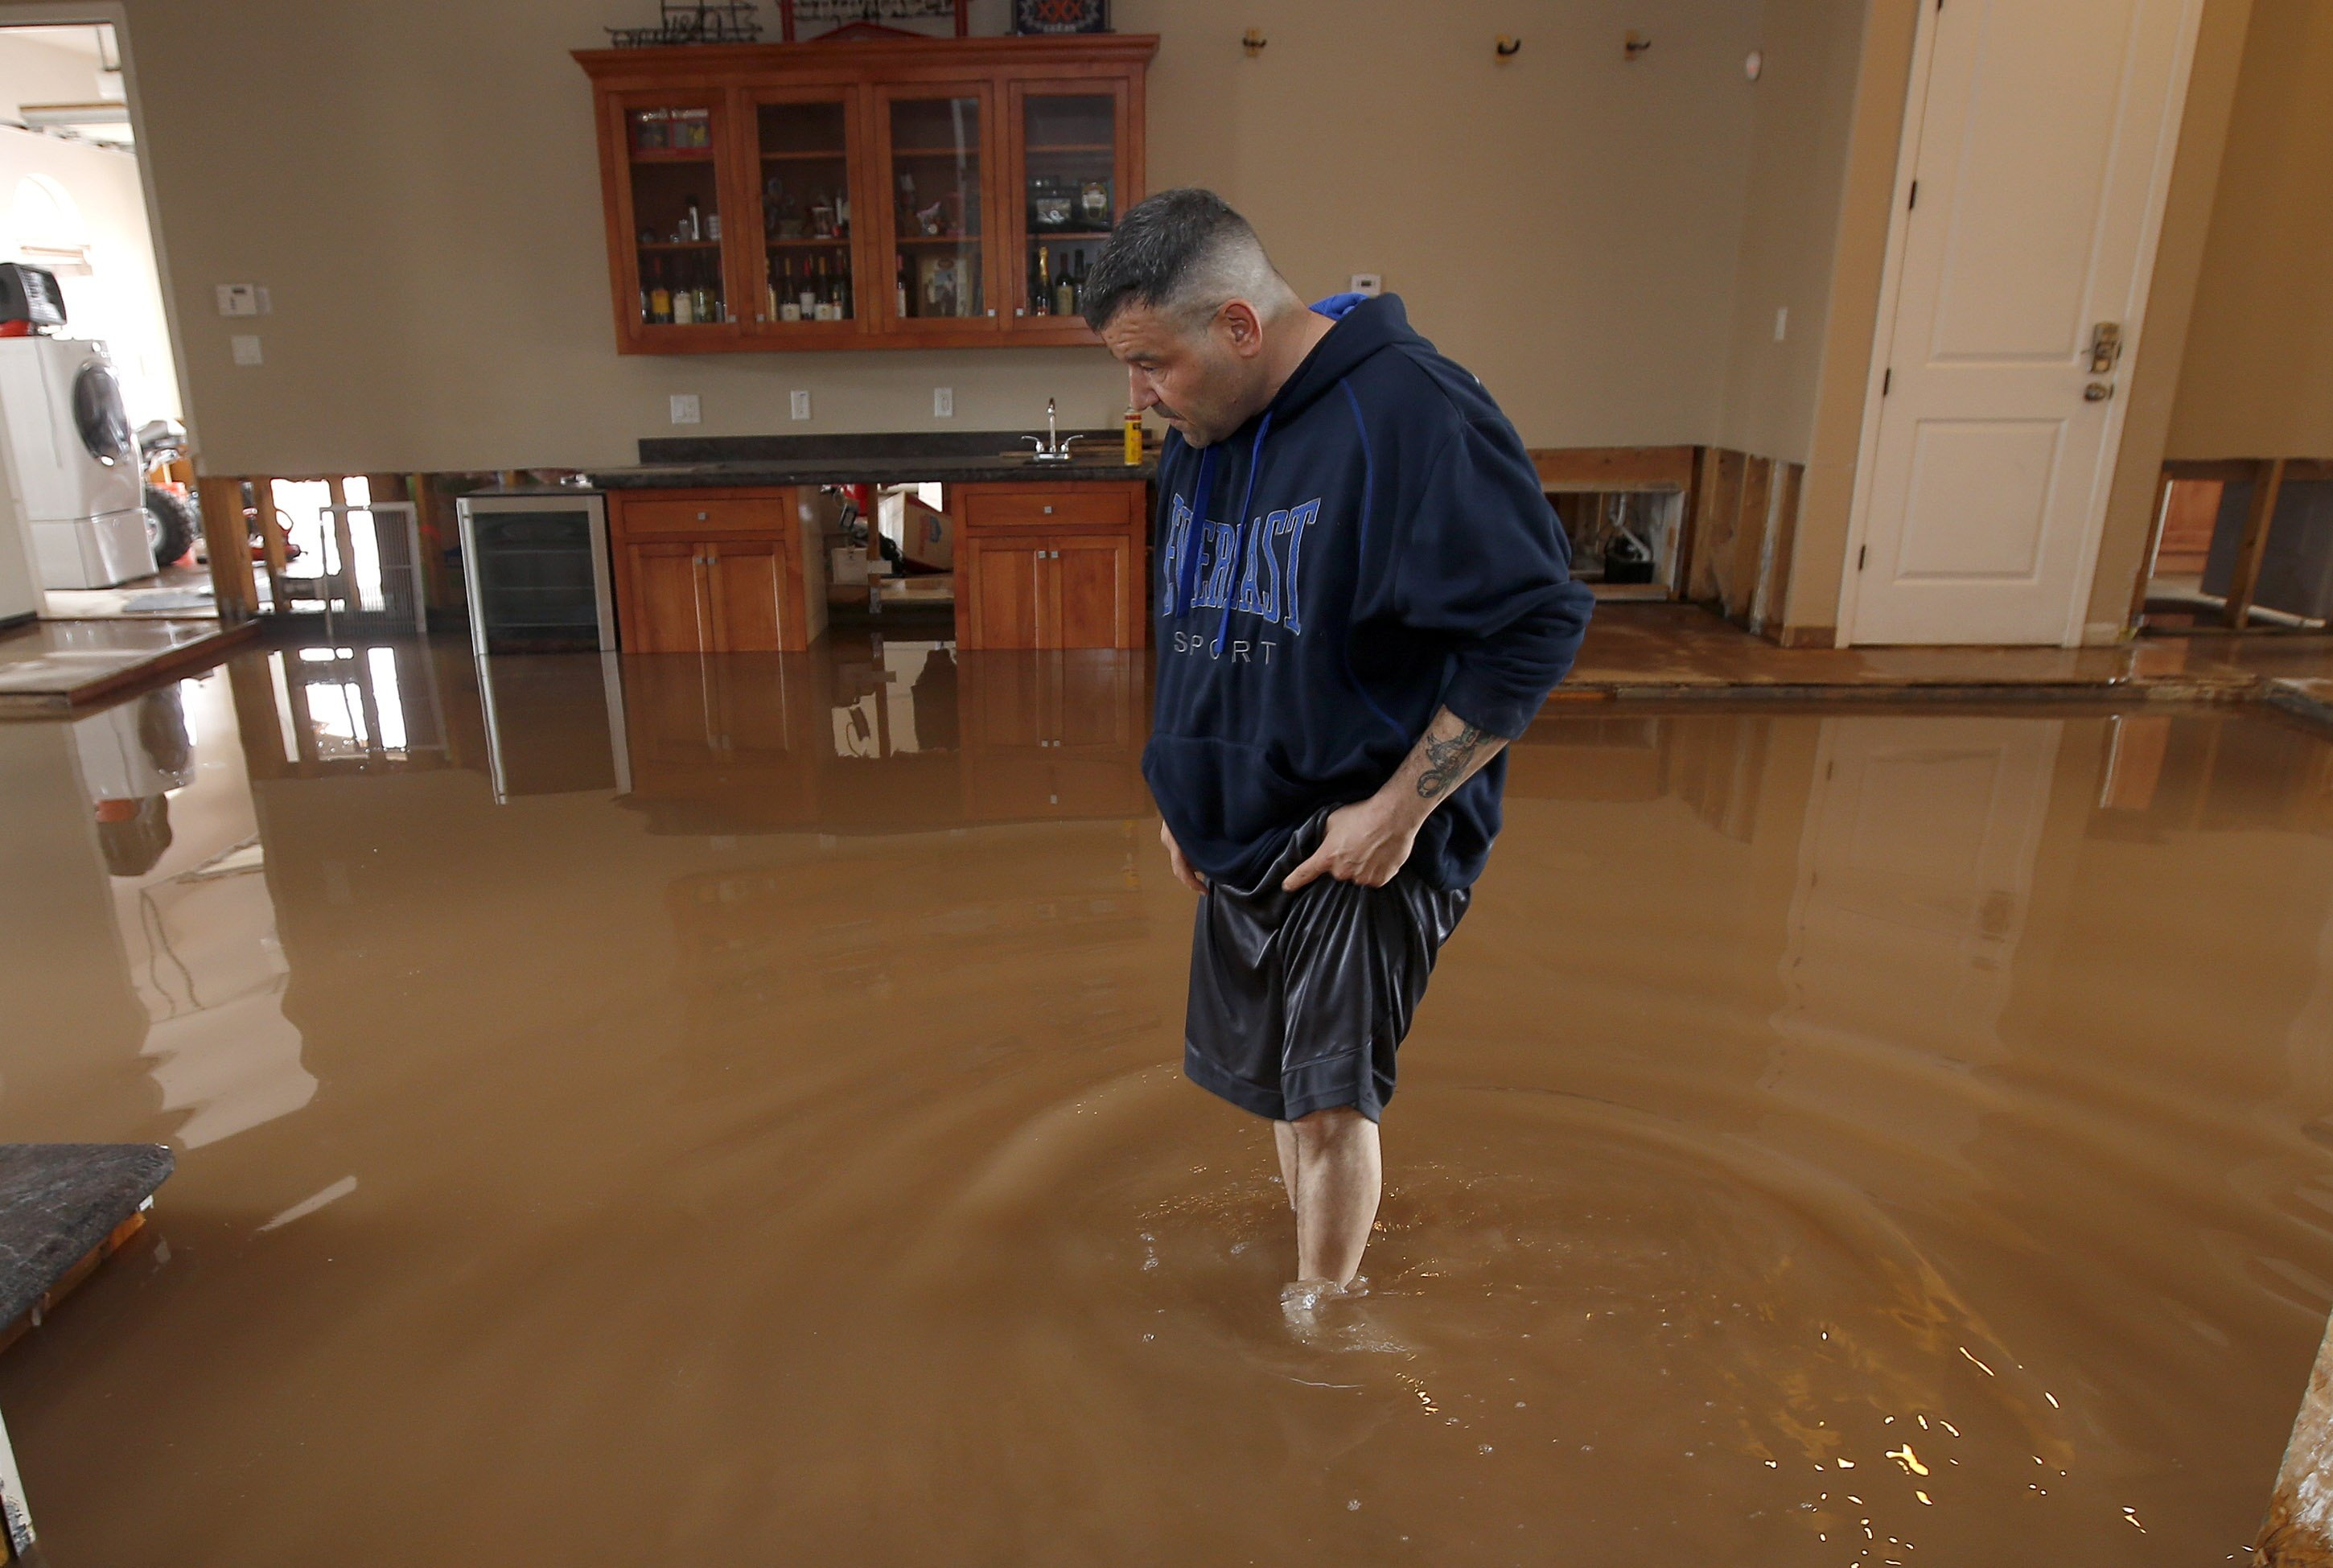 Nick Kriaris wades through his flooded home after heavy rains caused severe flash flooding in Phoenix on Sept. 8, 2014.